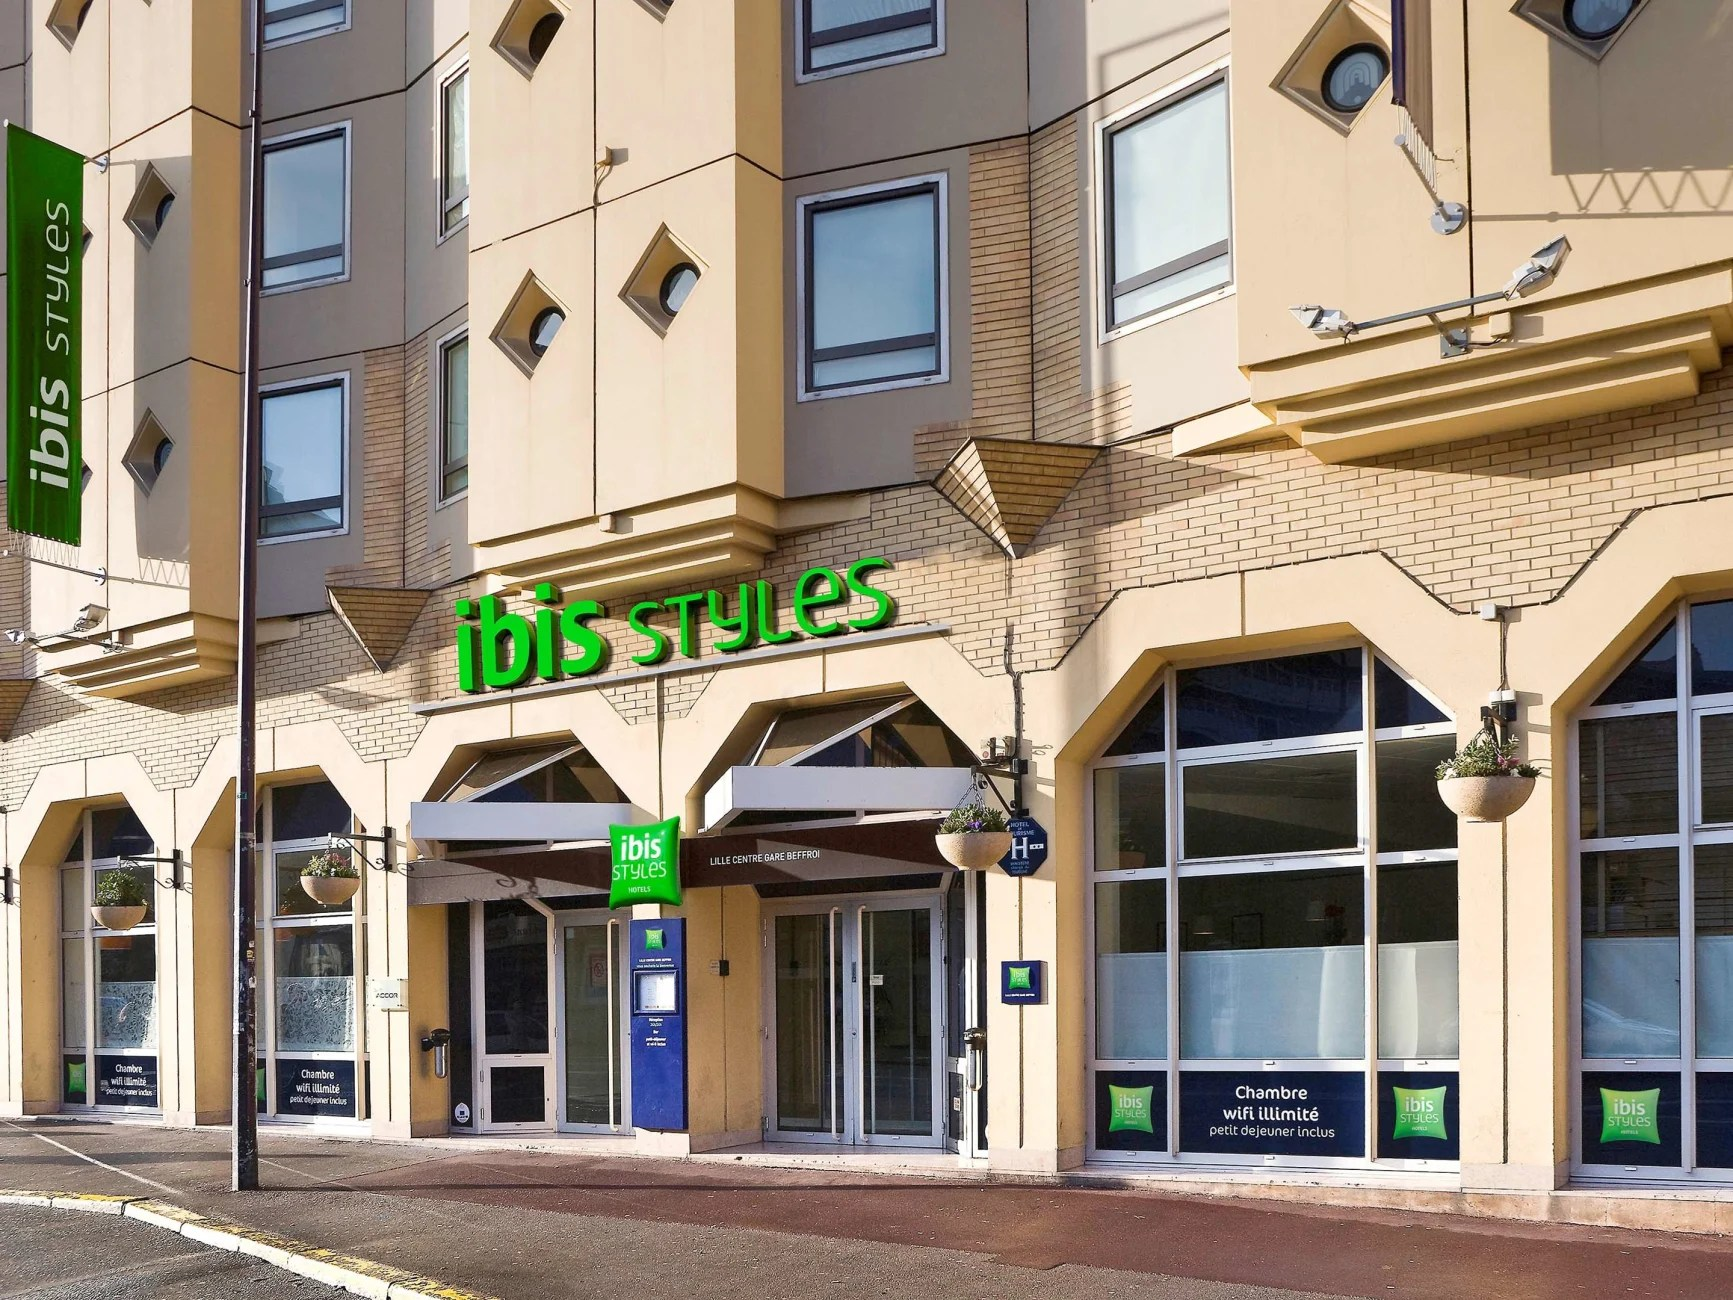 Parking Gare Lille Europe Tarif Hotel Ibis Styles Lille Centre Gare Beffroi Lille Trivago